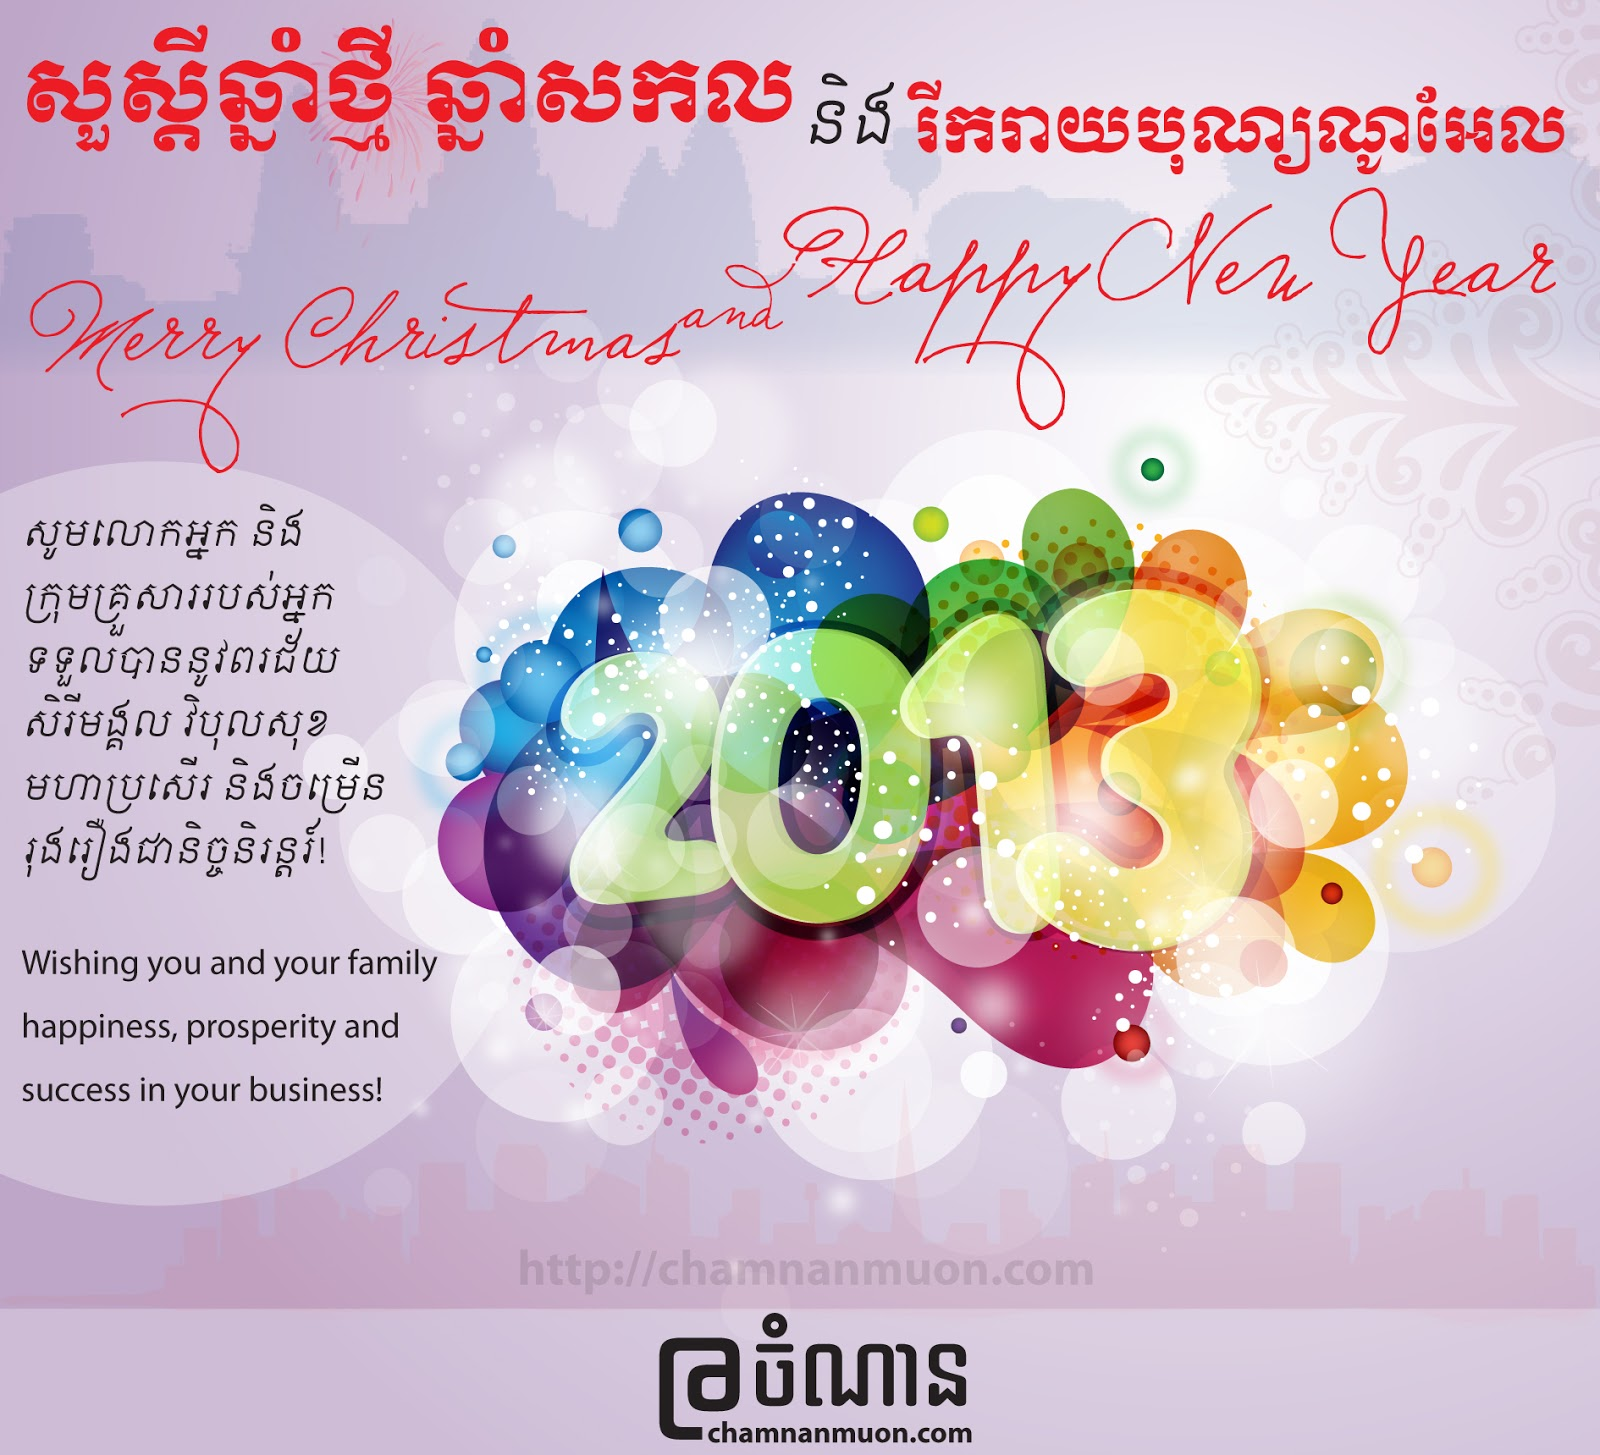 Chamnanmuon wishing cards merry christmas happy new year 2013 reheart Choice Image